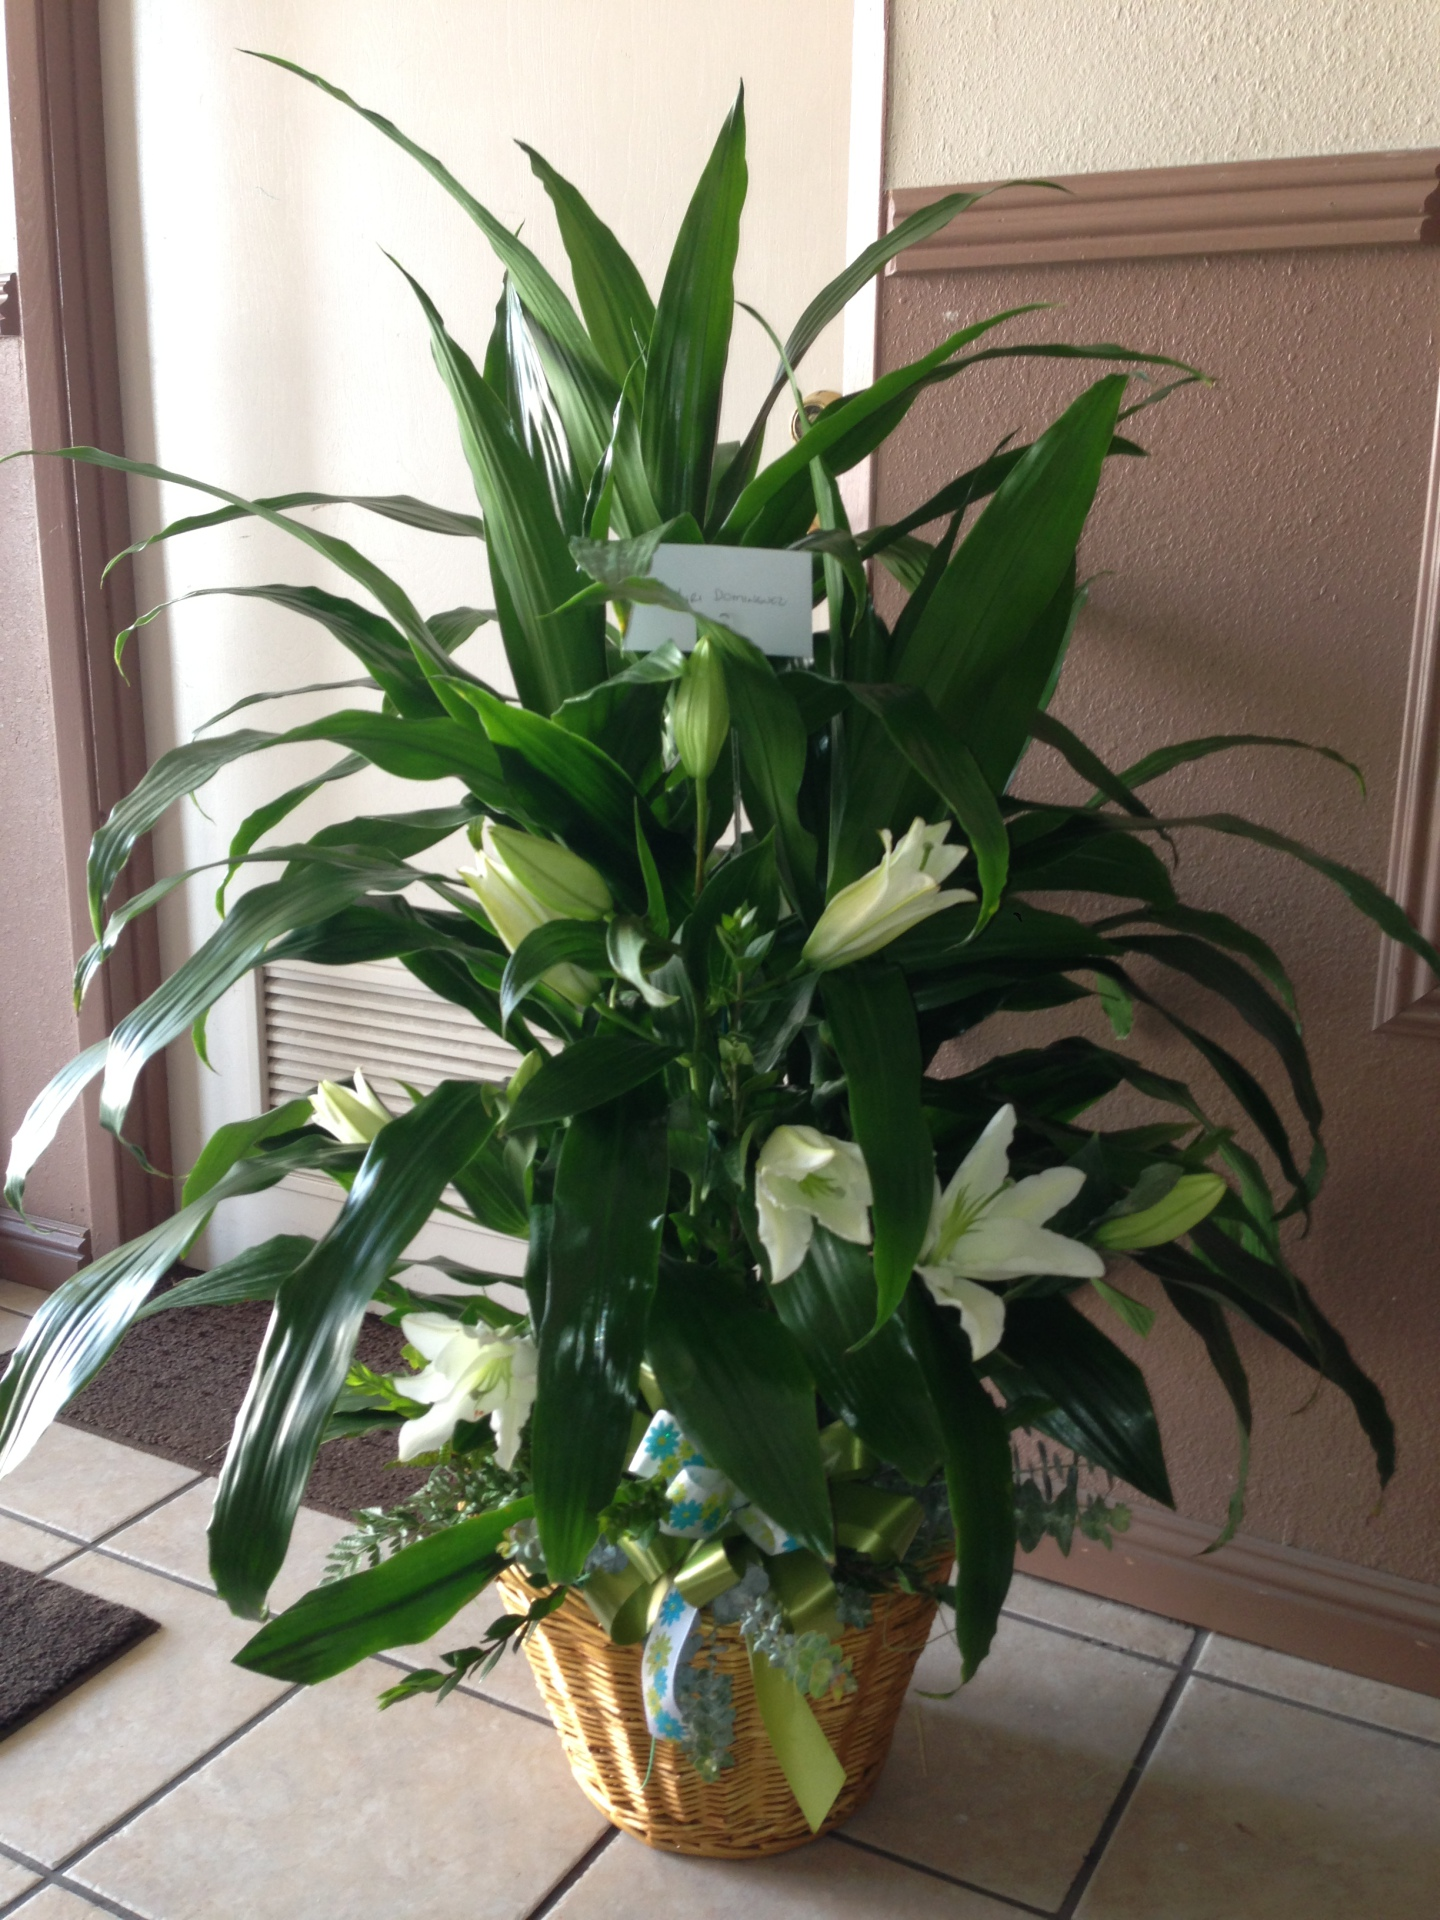 SP-4 Plant with lilies